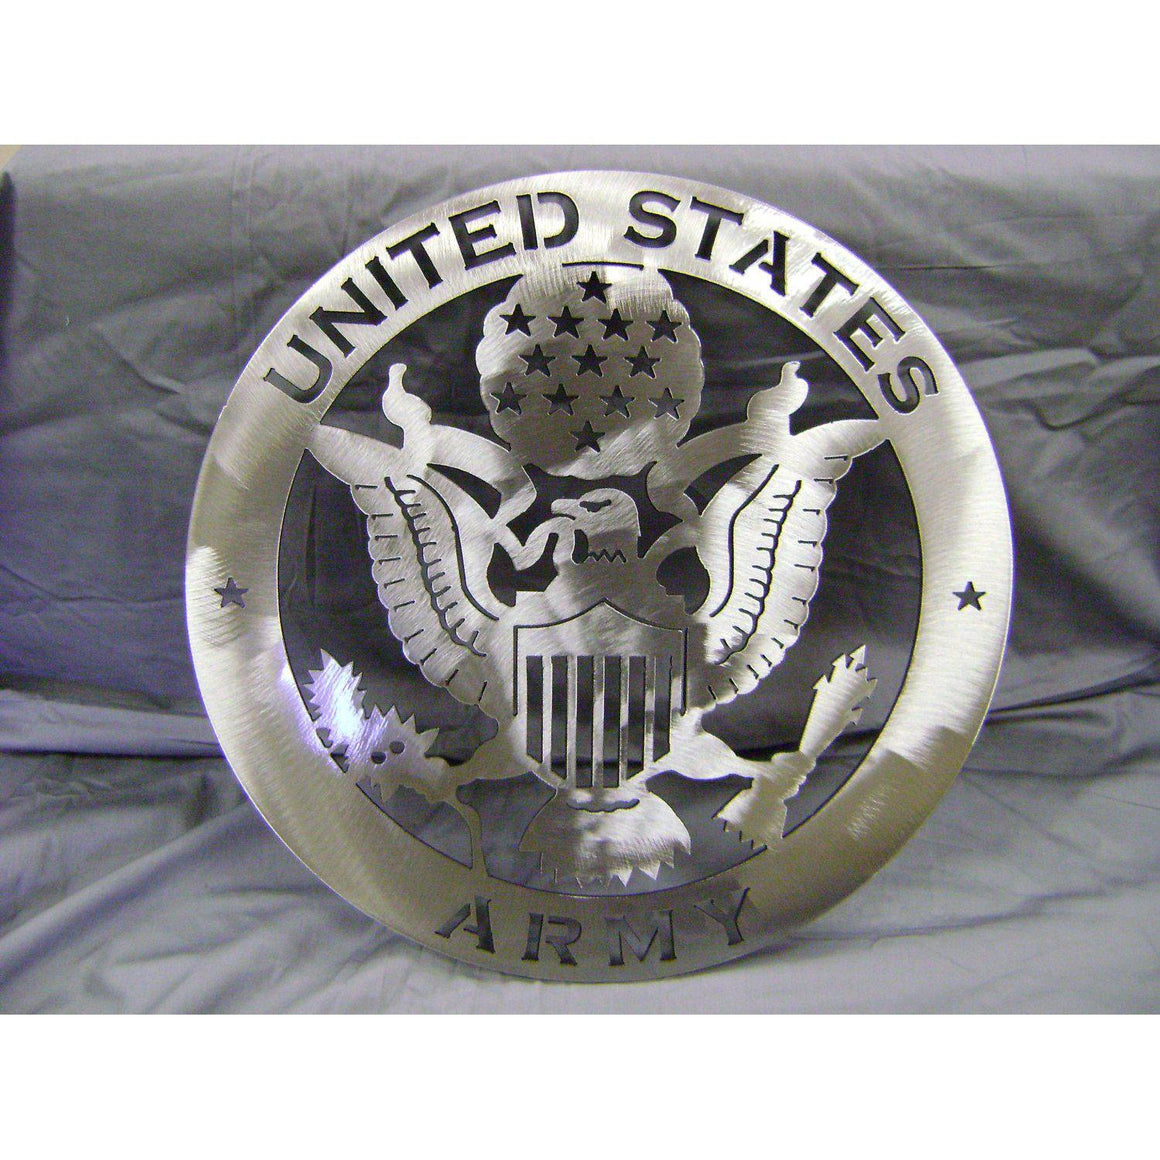 United States Army Emblem - Military Sign - Stainless Steel Metal Wall Art-Cascade Manufacturing